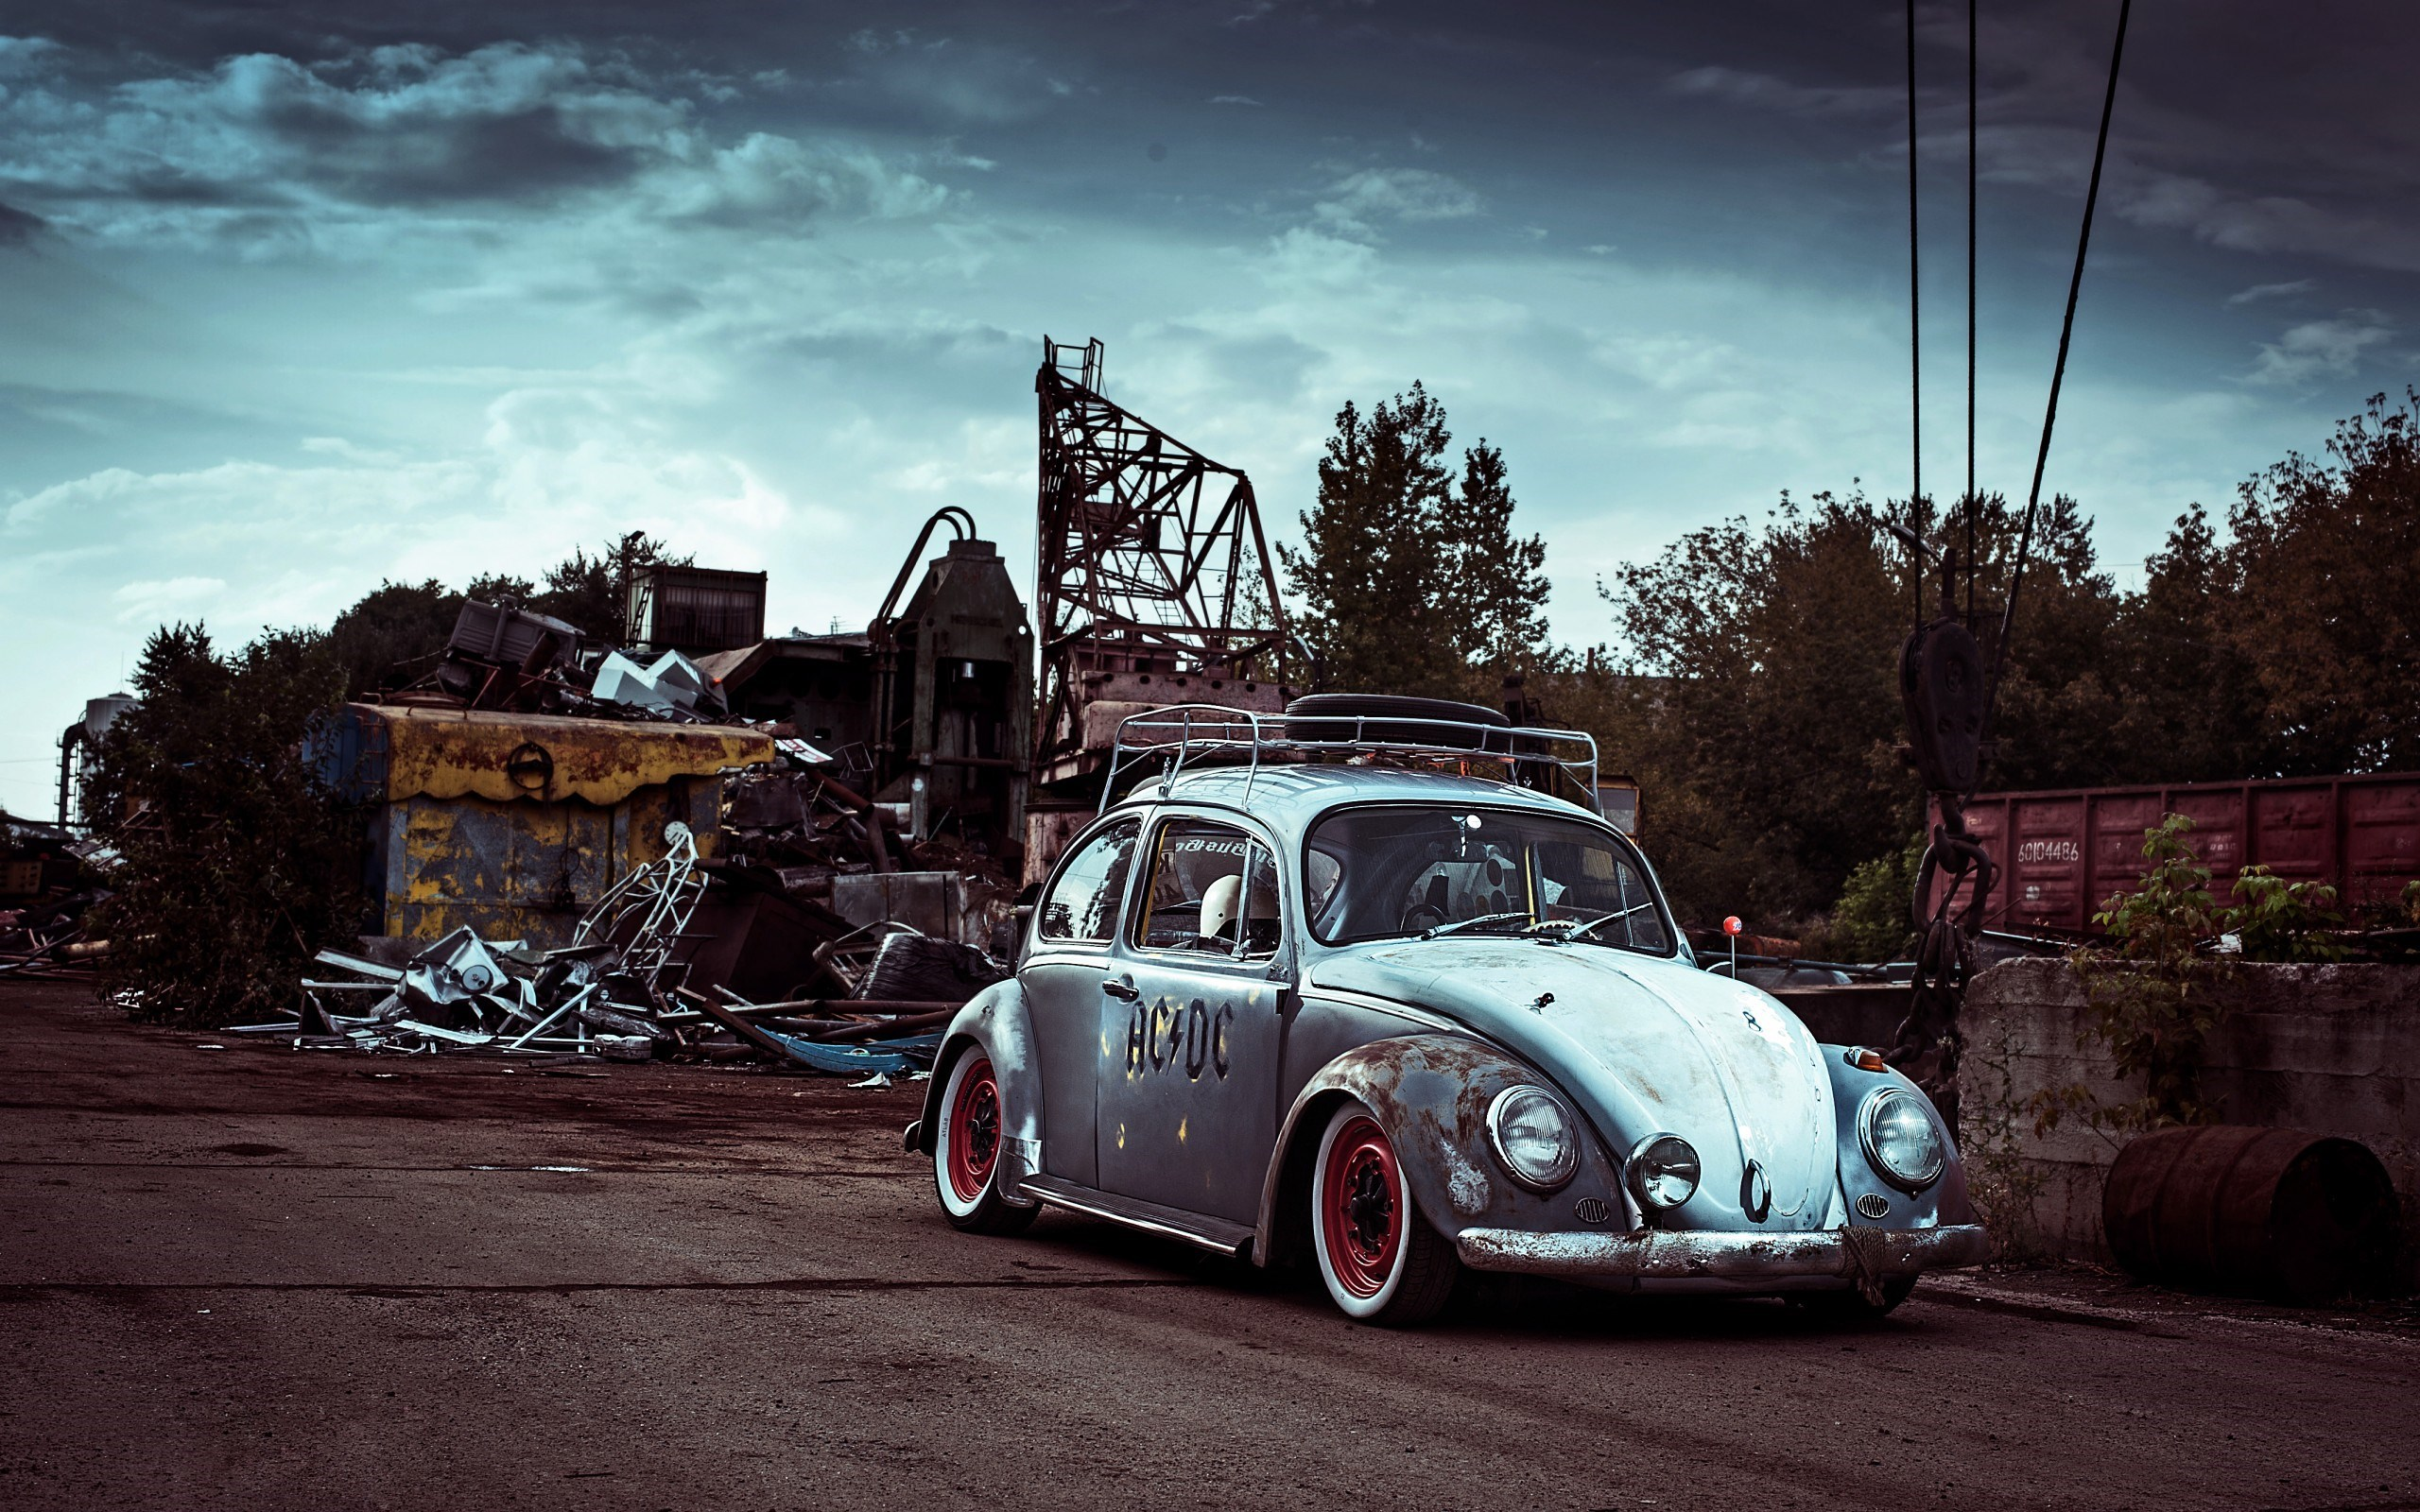 Volkswagen Beetle Images Kafer Time Rust HD Wallpaper And Background Photos